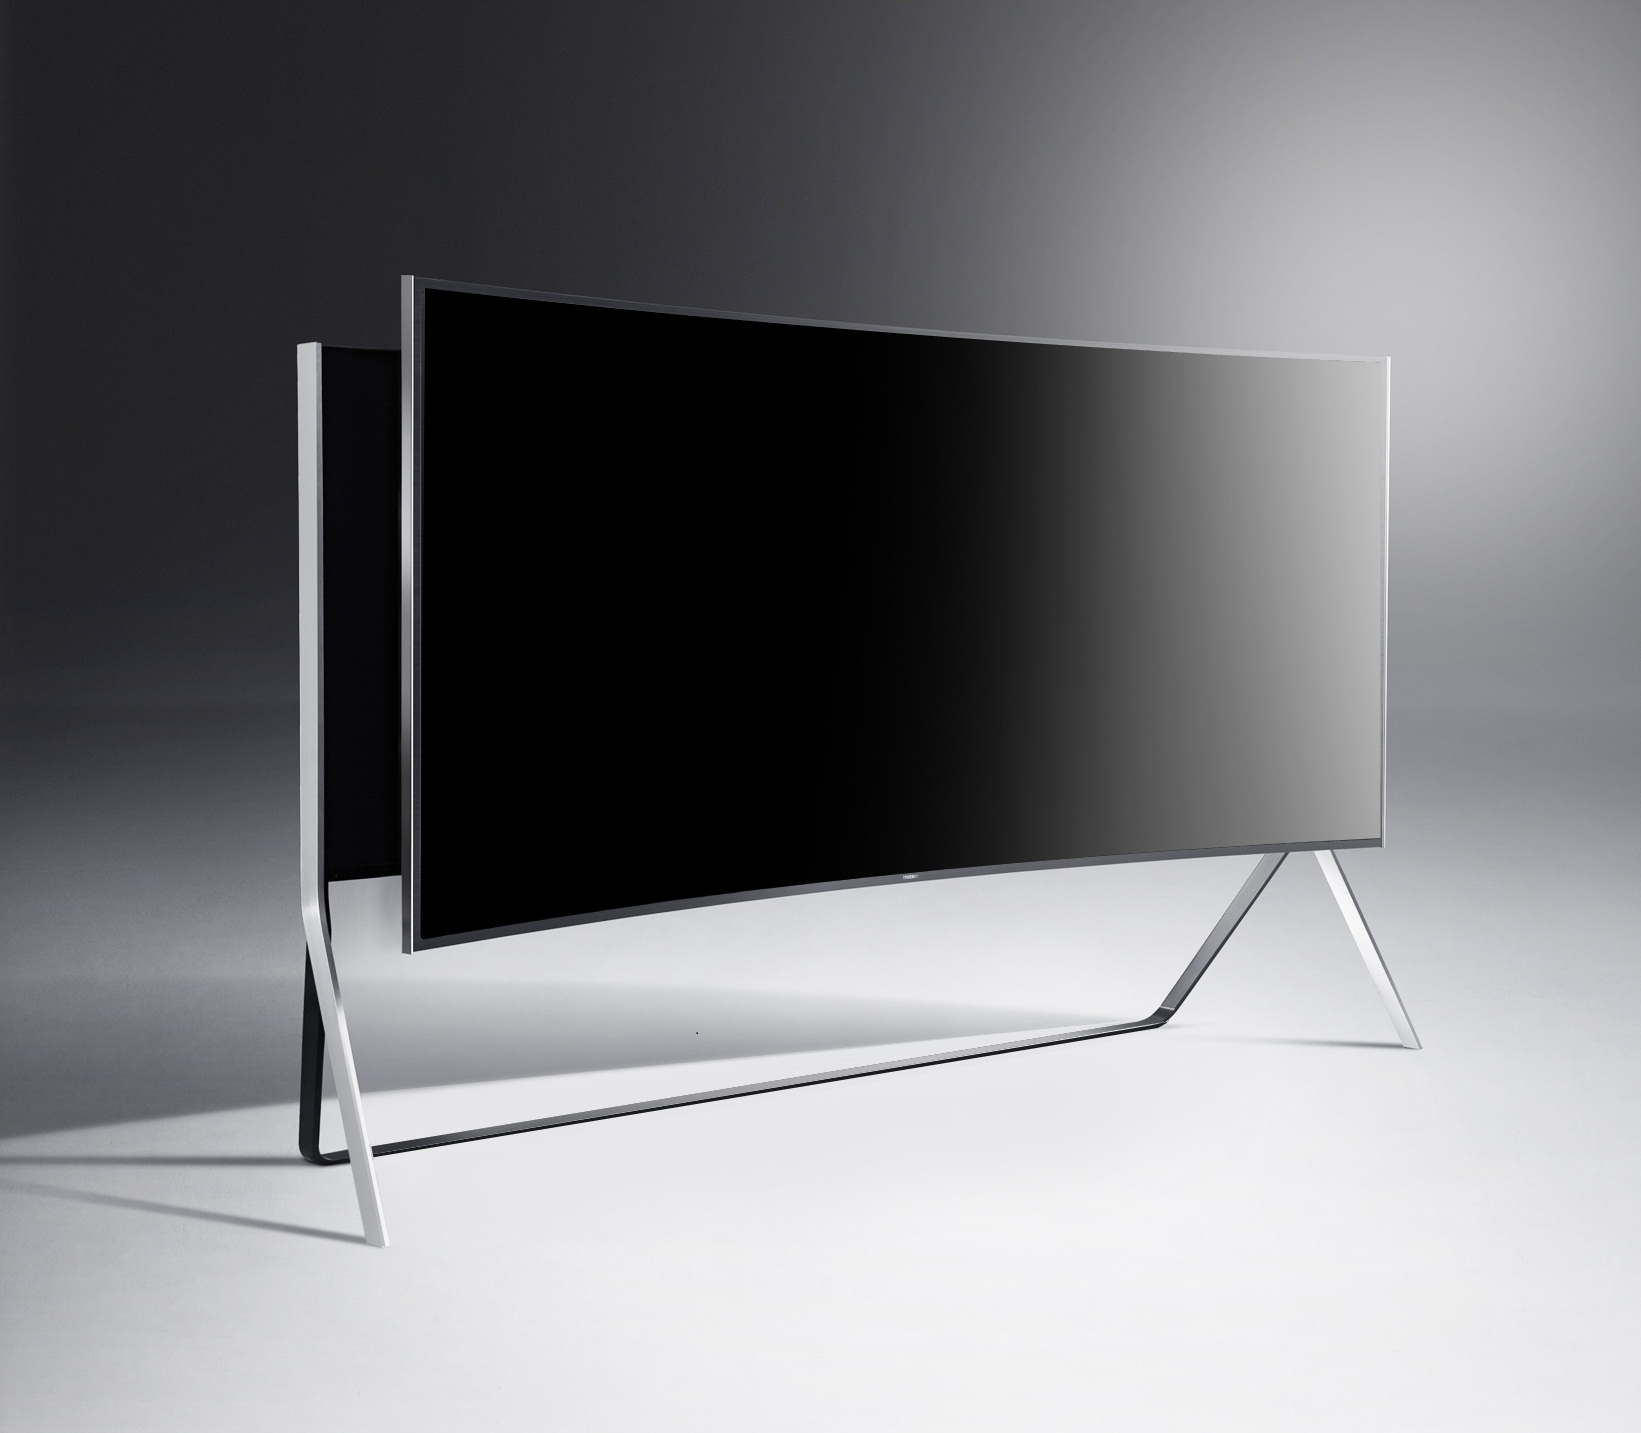 samsung curved tv 105. the 105in monster is also world\u0027s largest curved tv and has a 21:9 aspect ratio samsung tv 105